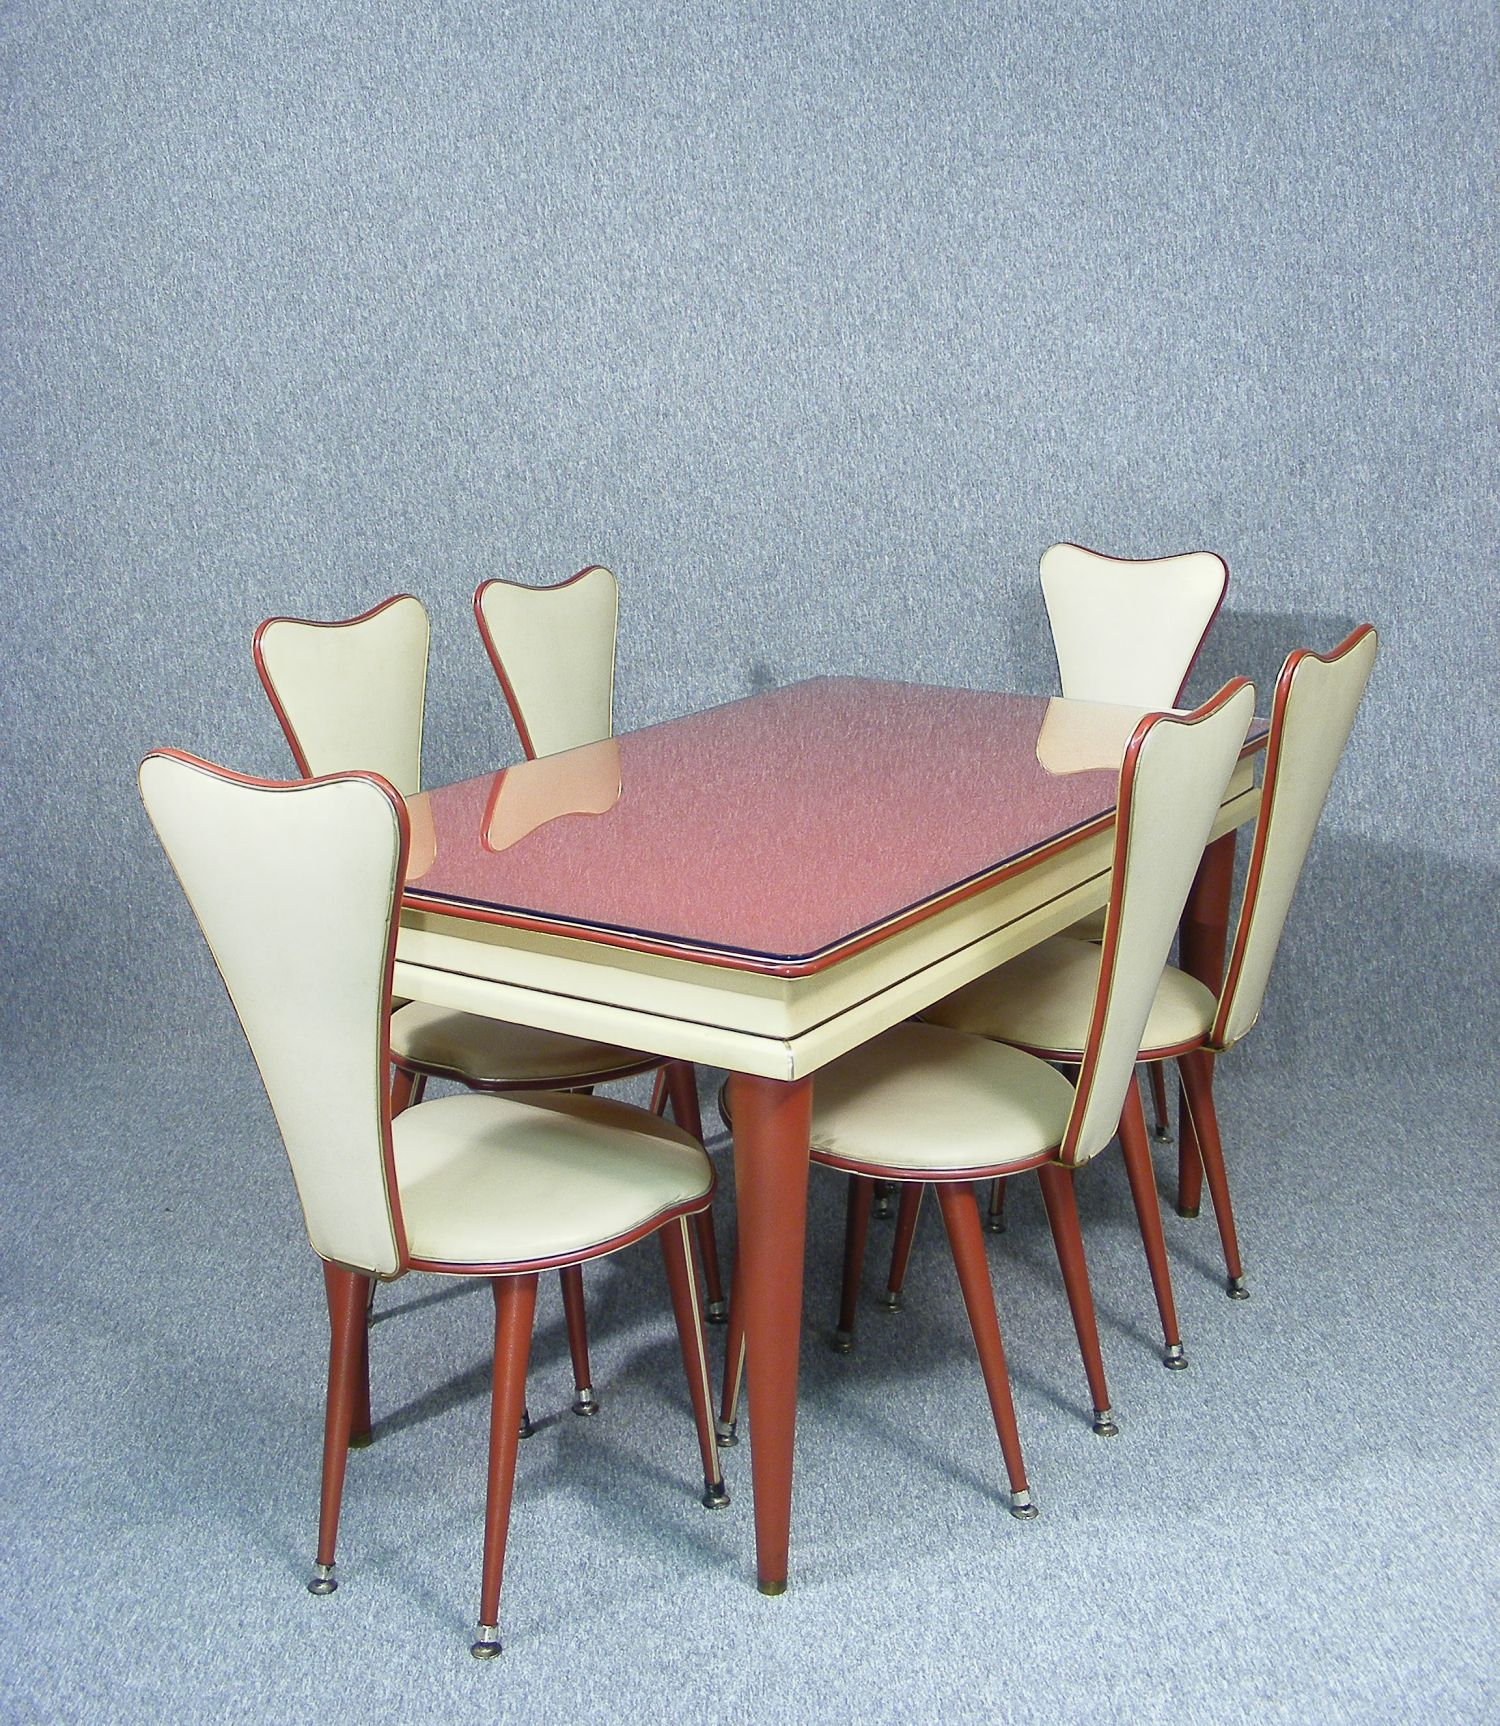 This Is A Wonderful Iconic 1950 S Dining Table And Chairs Designed